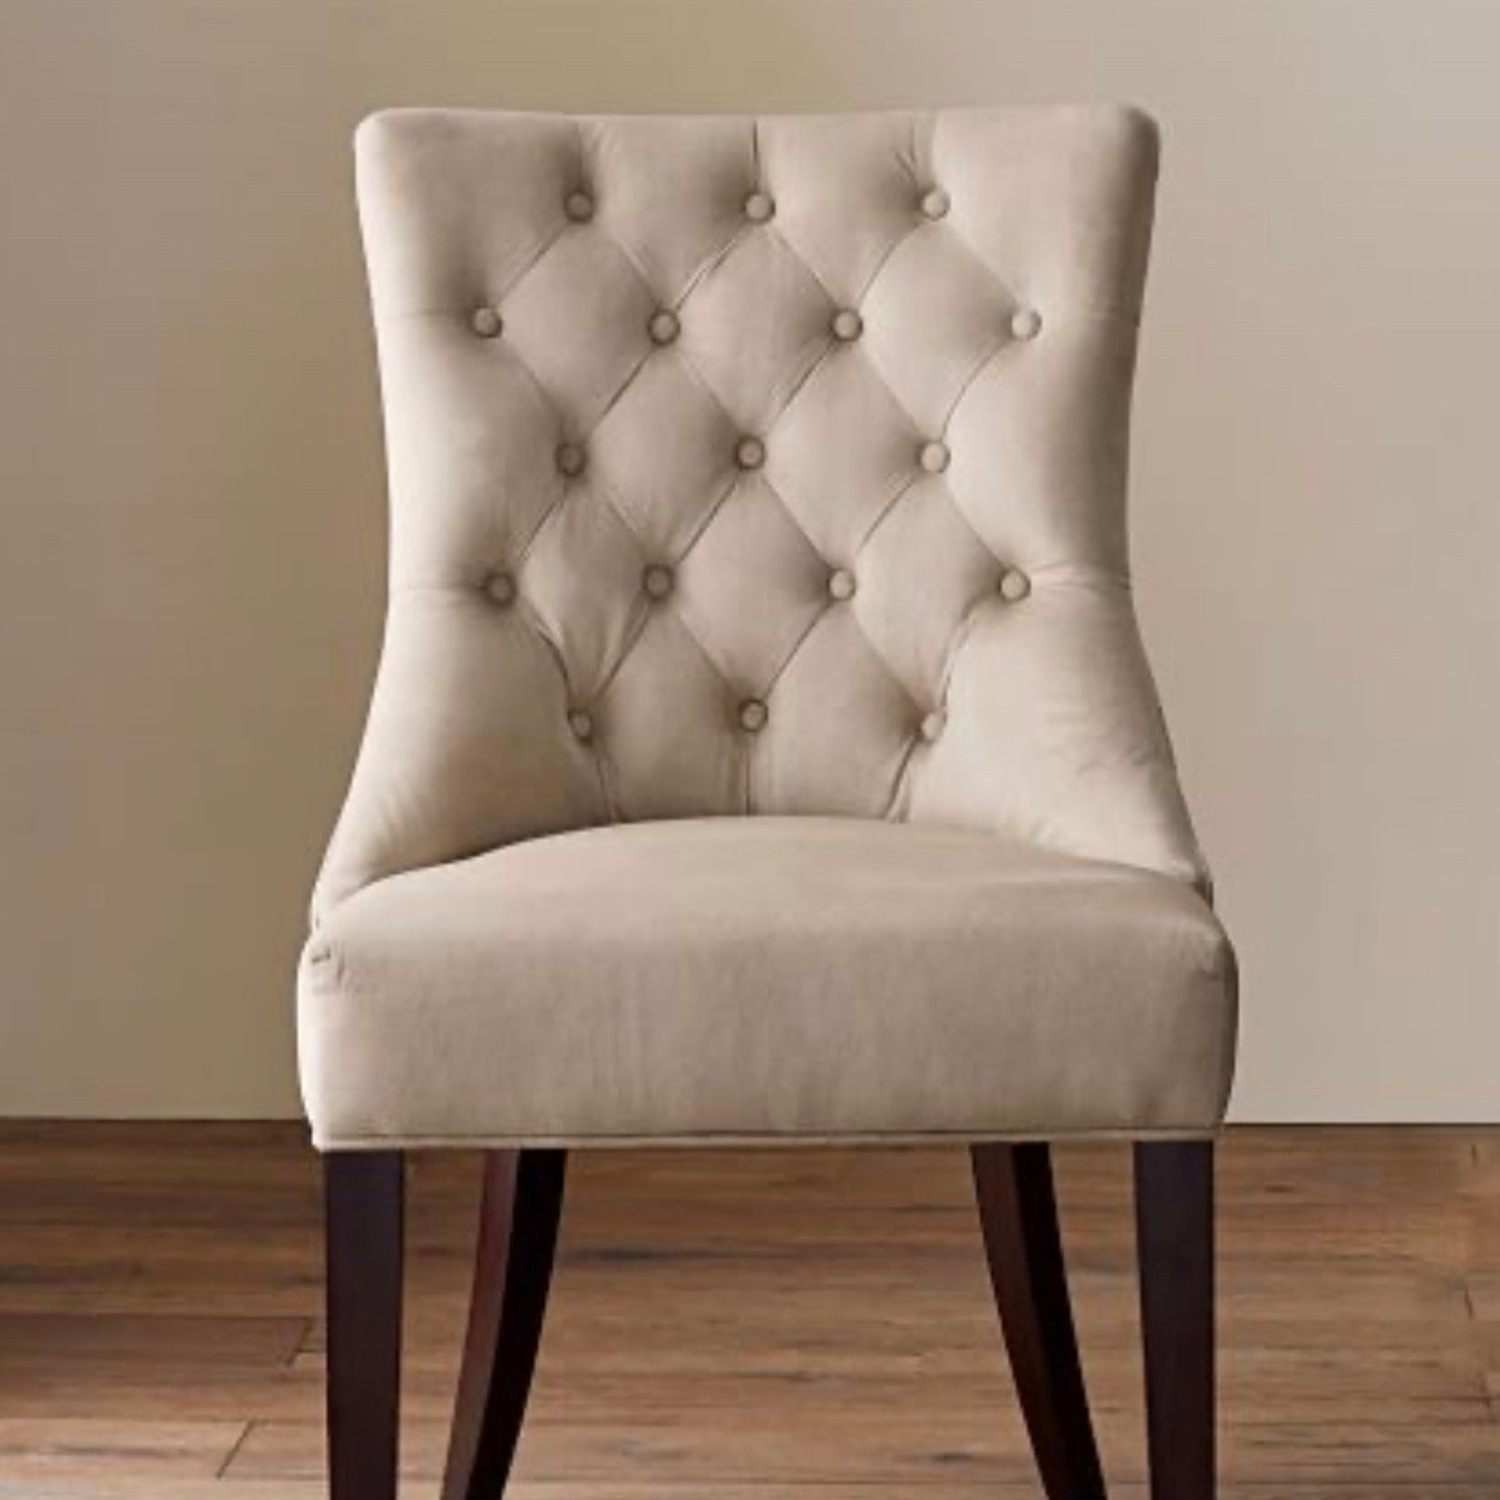 Pottery Barn Oatmeal Tufted Hayes Chair - image-1